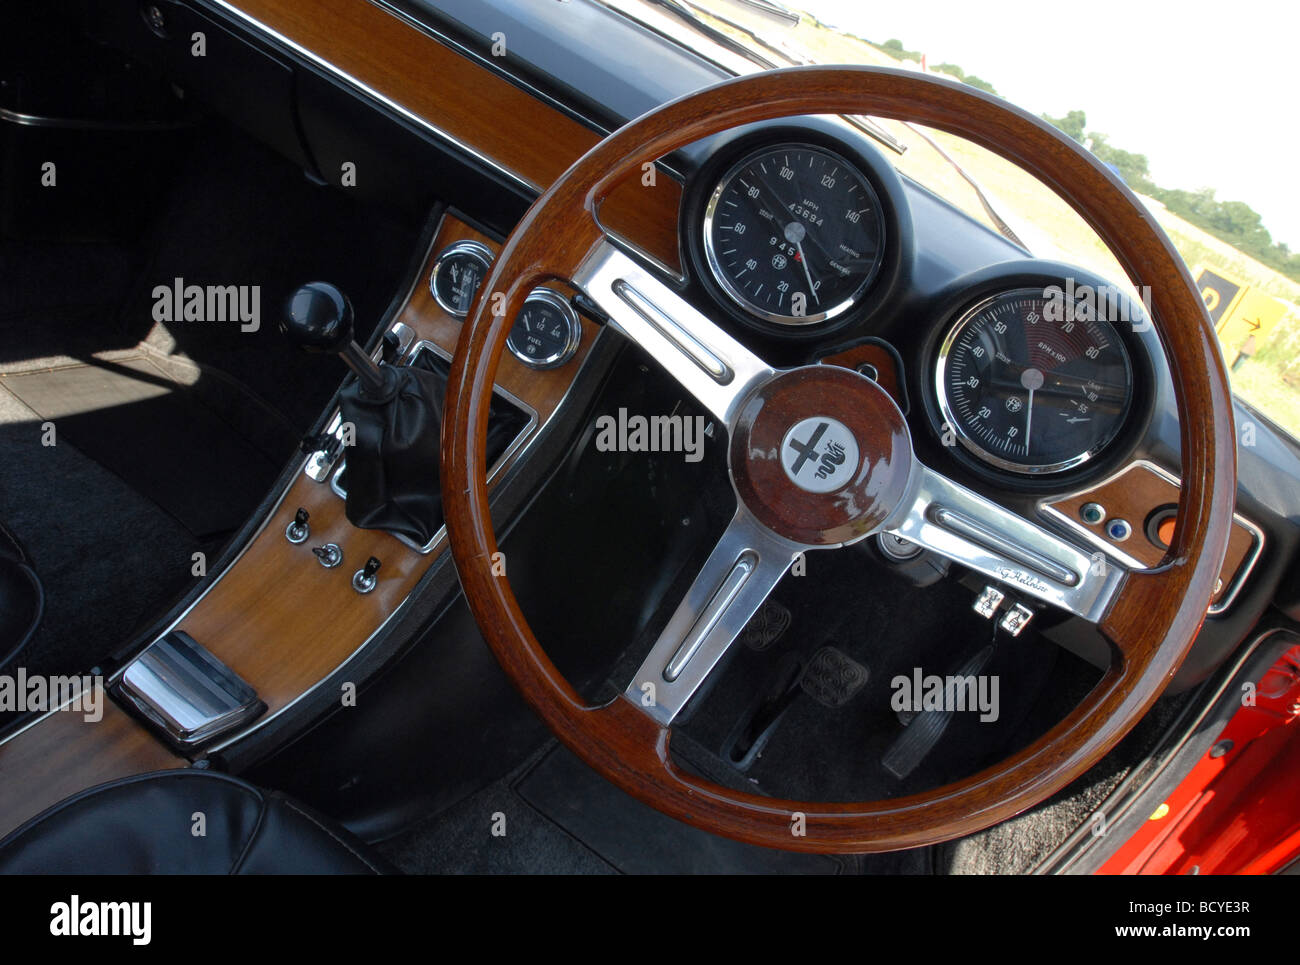 alfa romeo gtv 1750 coupe classic red italian sports car interior stock photo 25190027 alamy. Black Bedroom Furniture Sets. Home Design Ideas